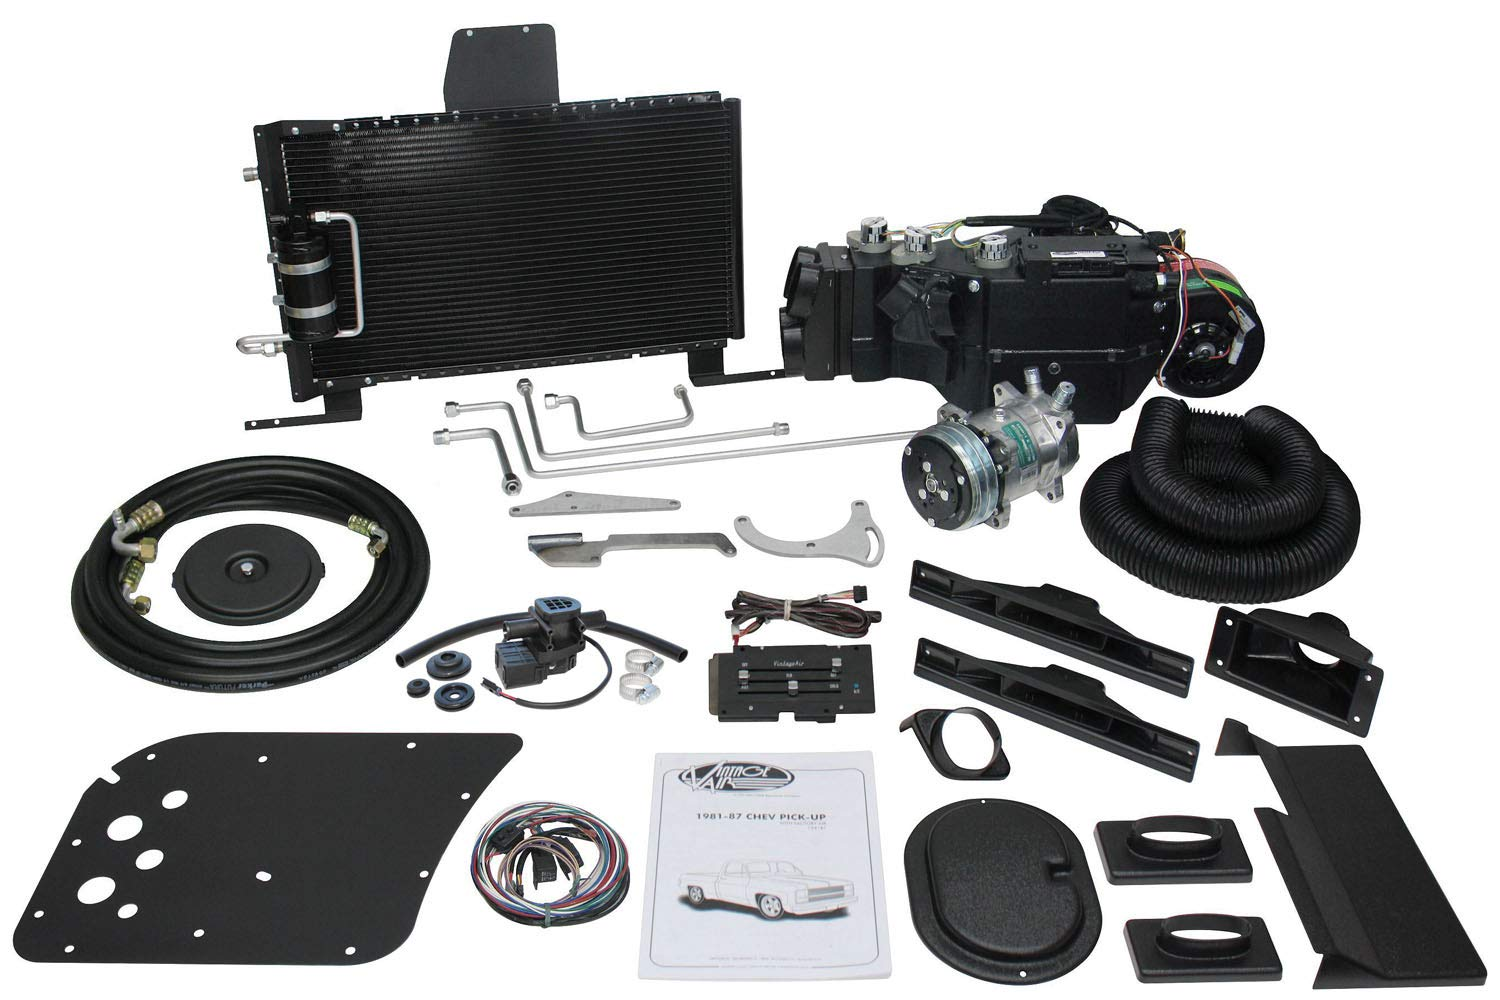 Vintage Air Gen Iv Surefit Complete System Kit 1973 1980 Chevy Heater Wiring 1974 1975 1976 1977 1978 1979 Gmc Pickup Truck With Factory Ac